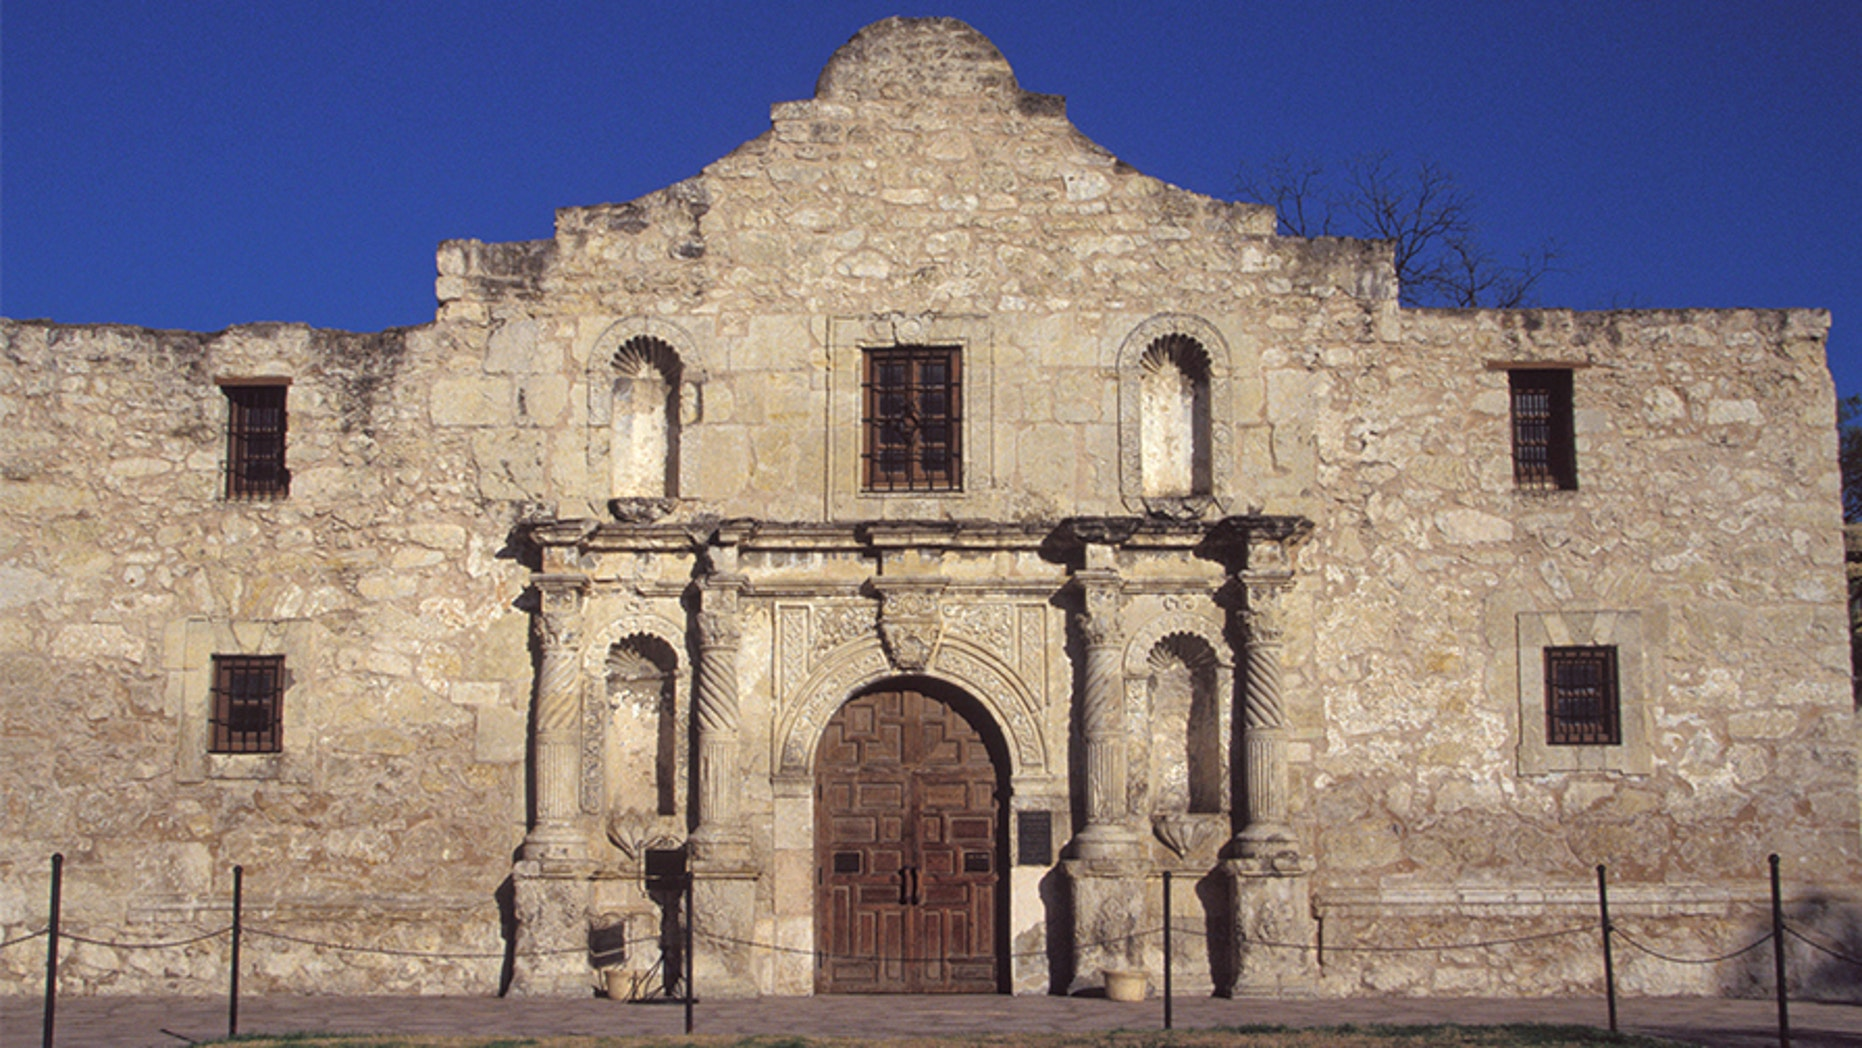 The social studies curriculum for 7th graders in Texas learning about the Alamo could reportedly face some new changes, at least one of which has drawn the ire of the state's governor.